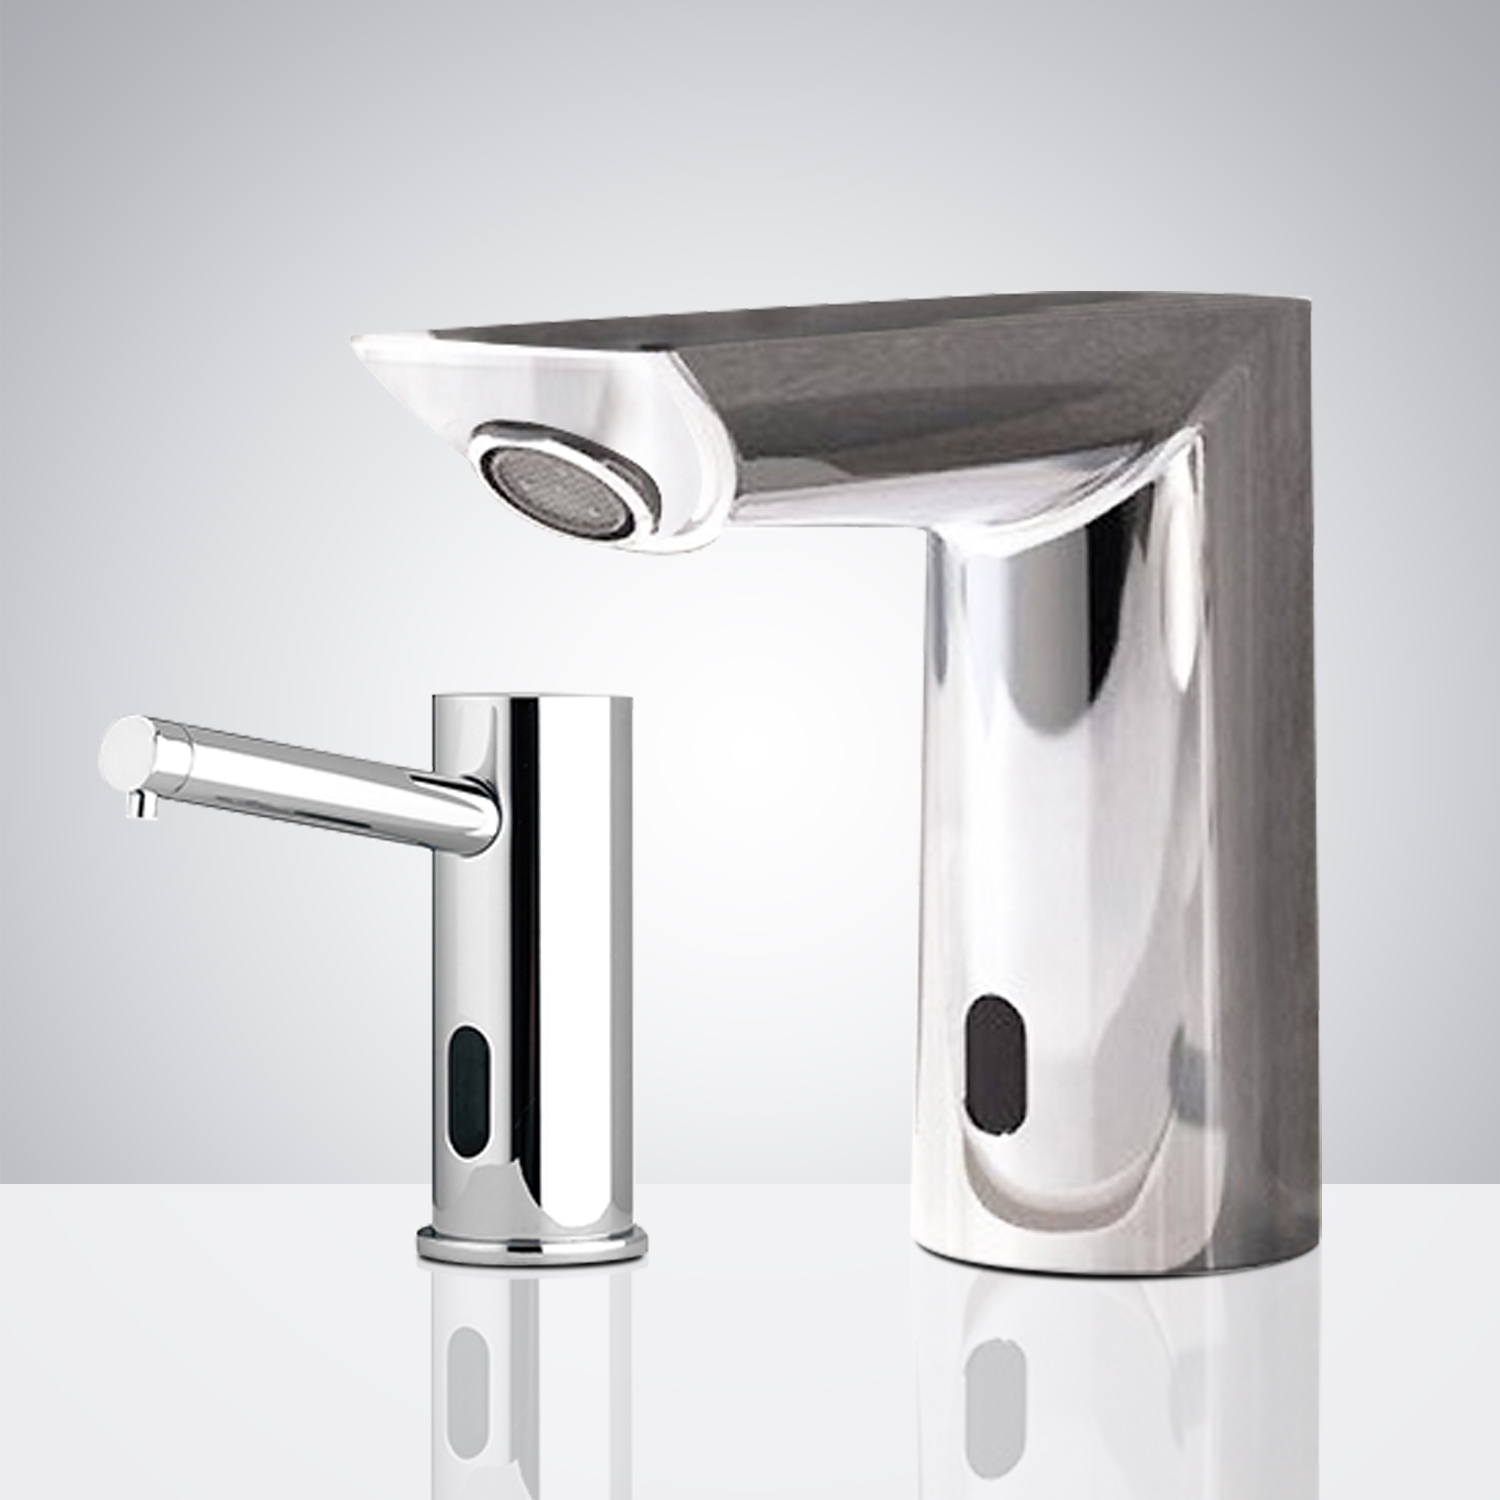 Fontana Cholet Commercial Infrared Motion Sensor Faucet & Automatic Soap Dispenser for Restrooms